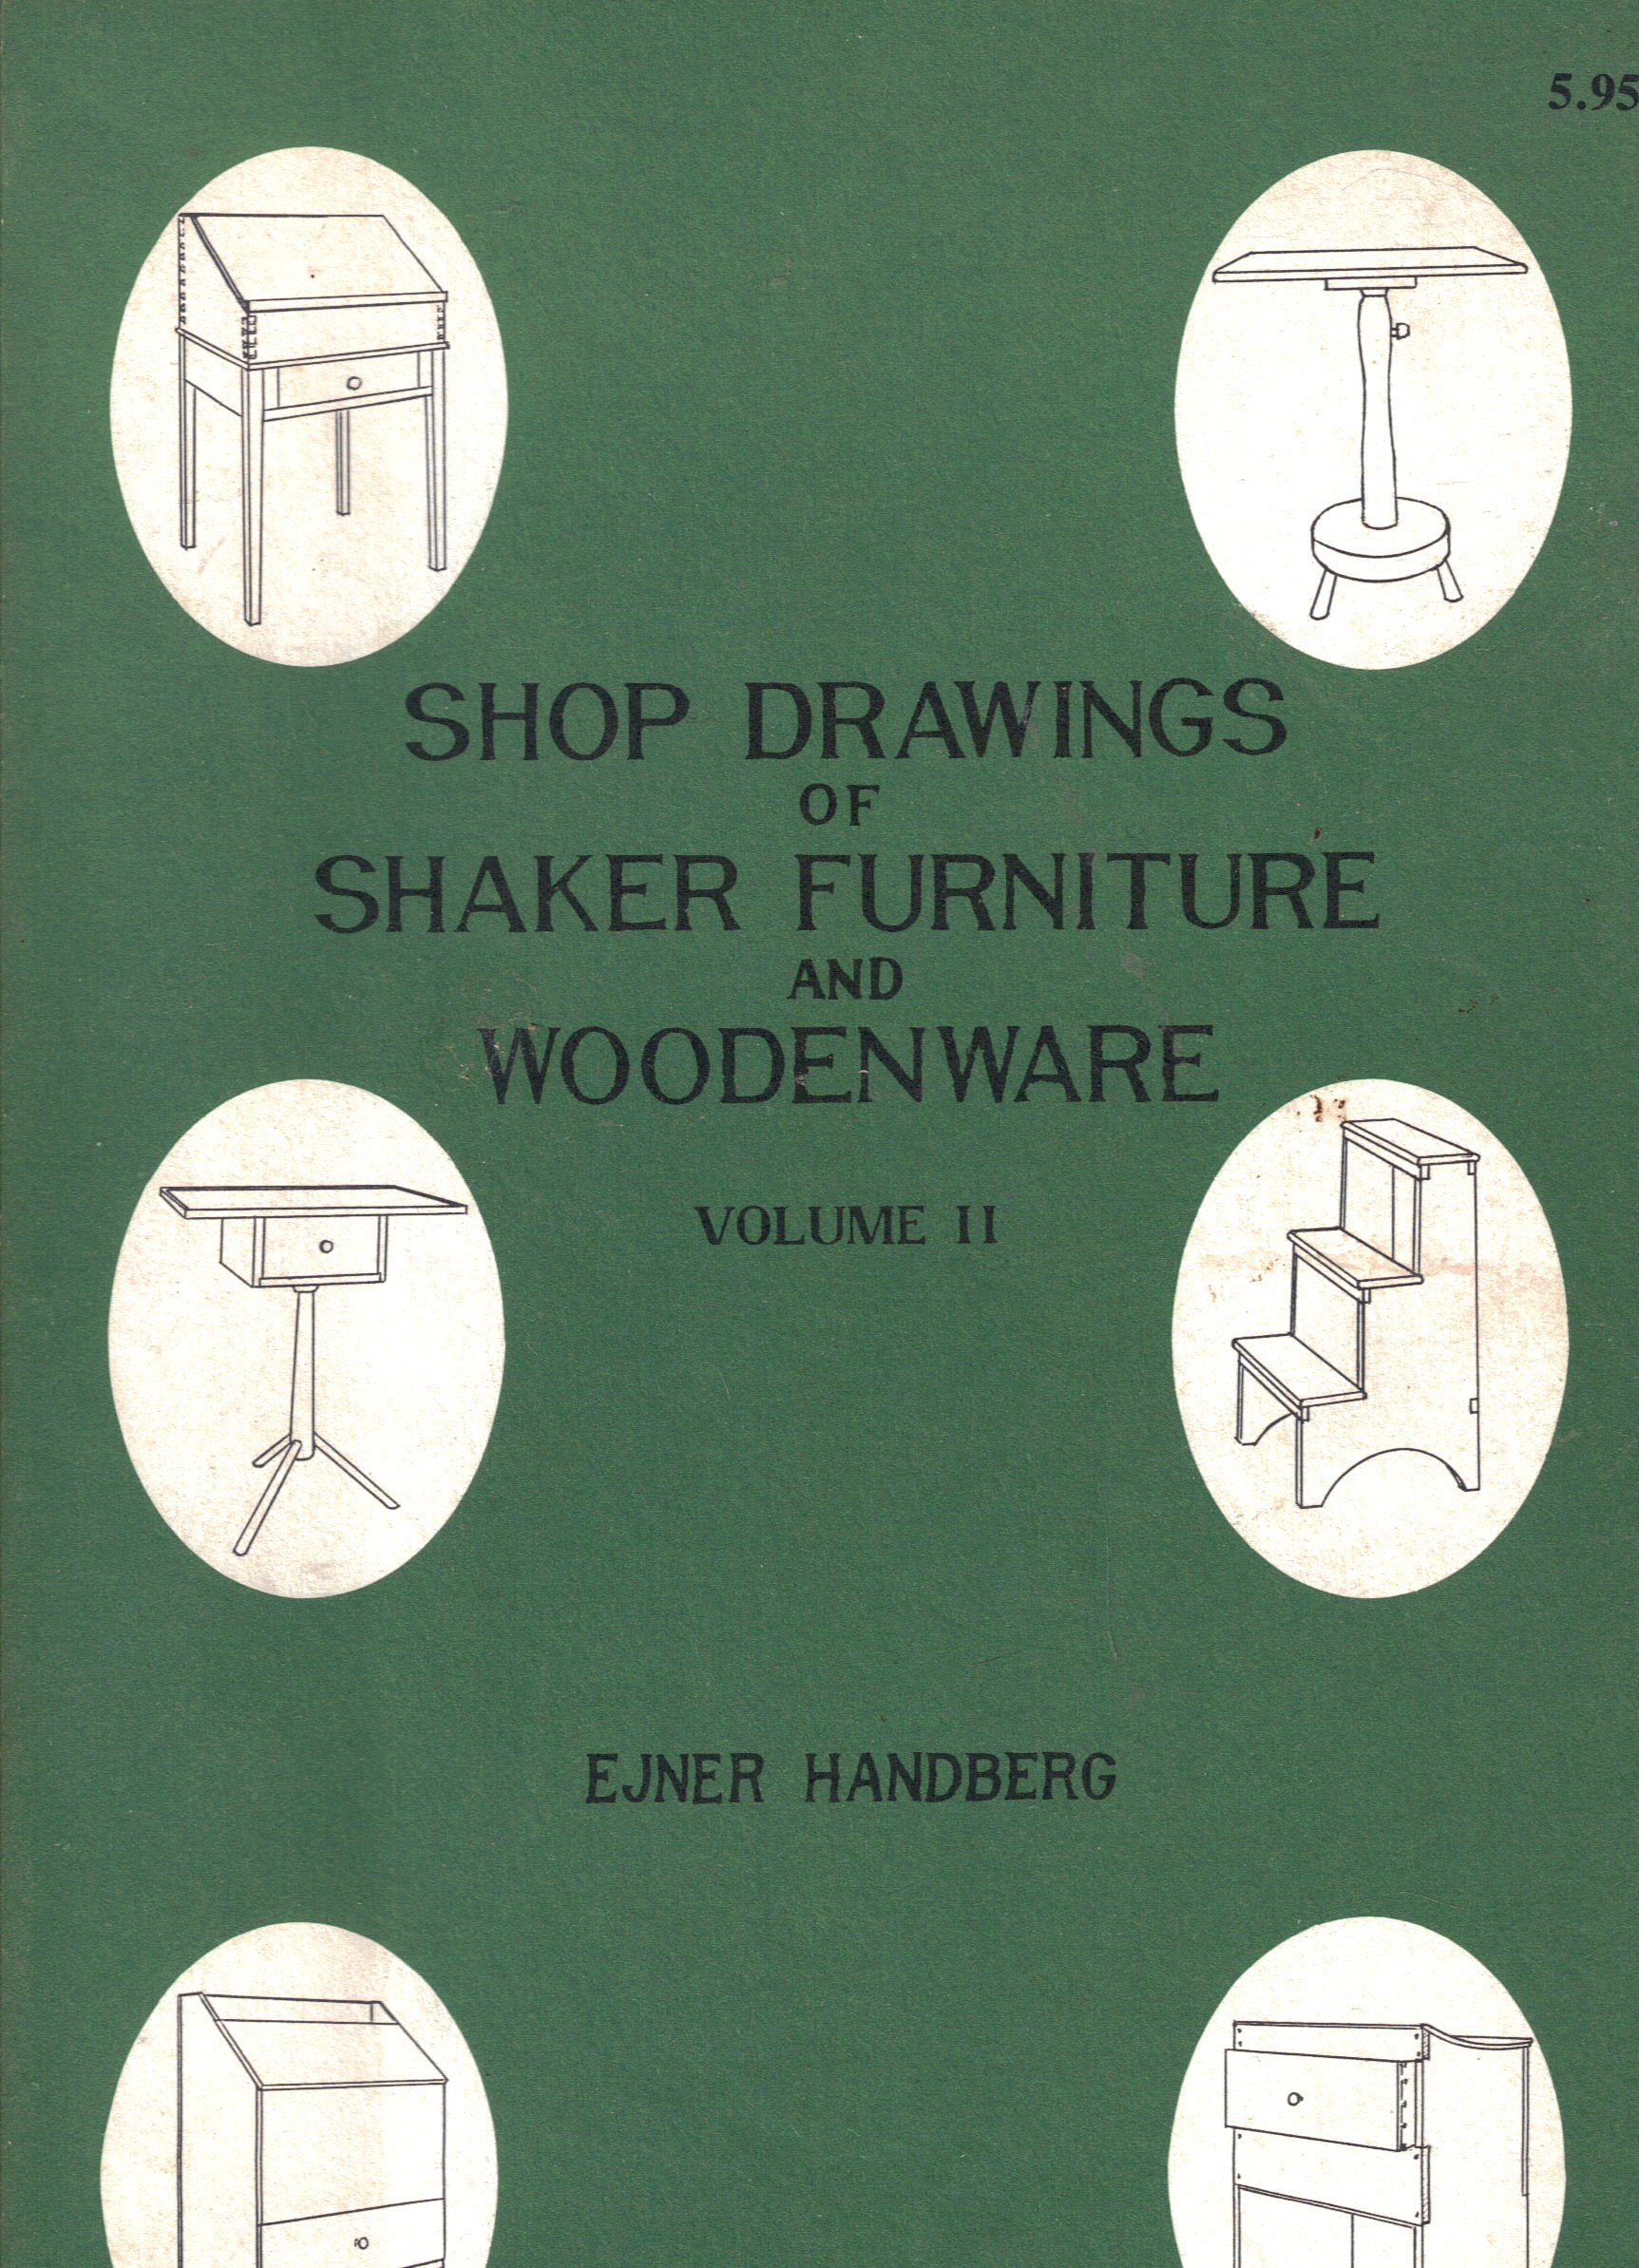 Furniture Shop Drawings Shop Drawings of Shaker